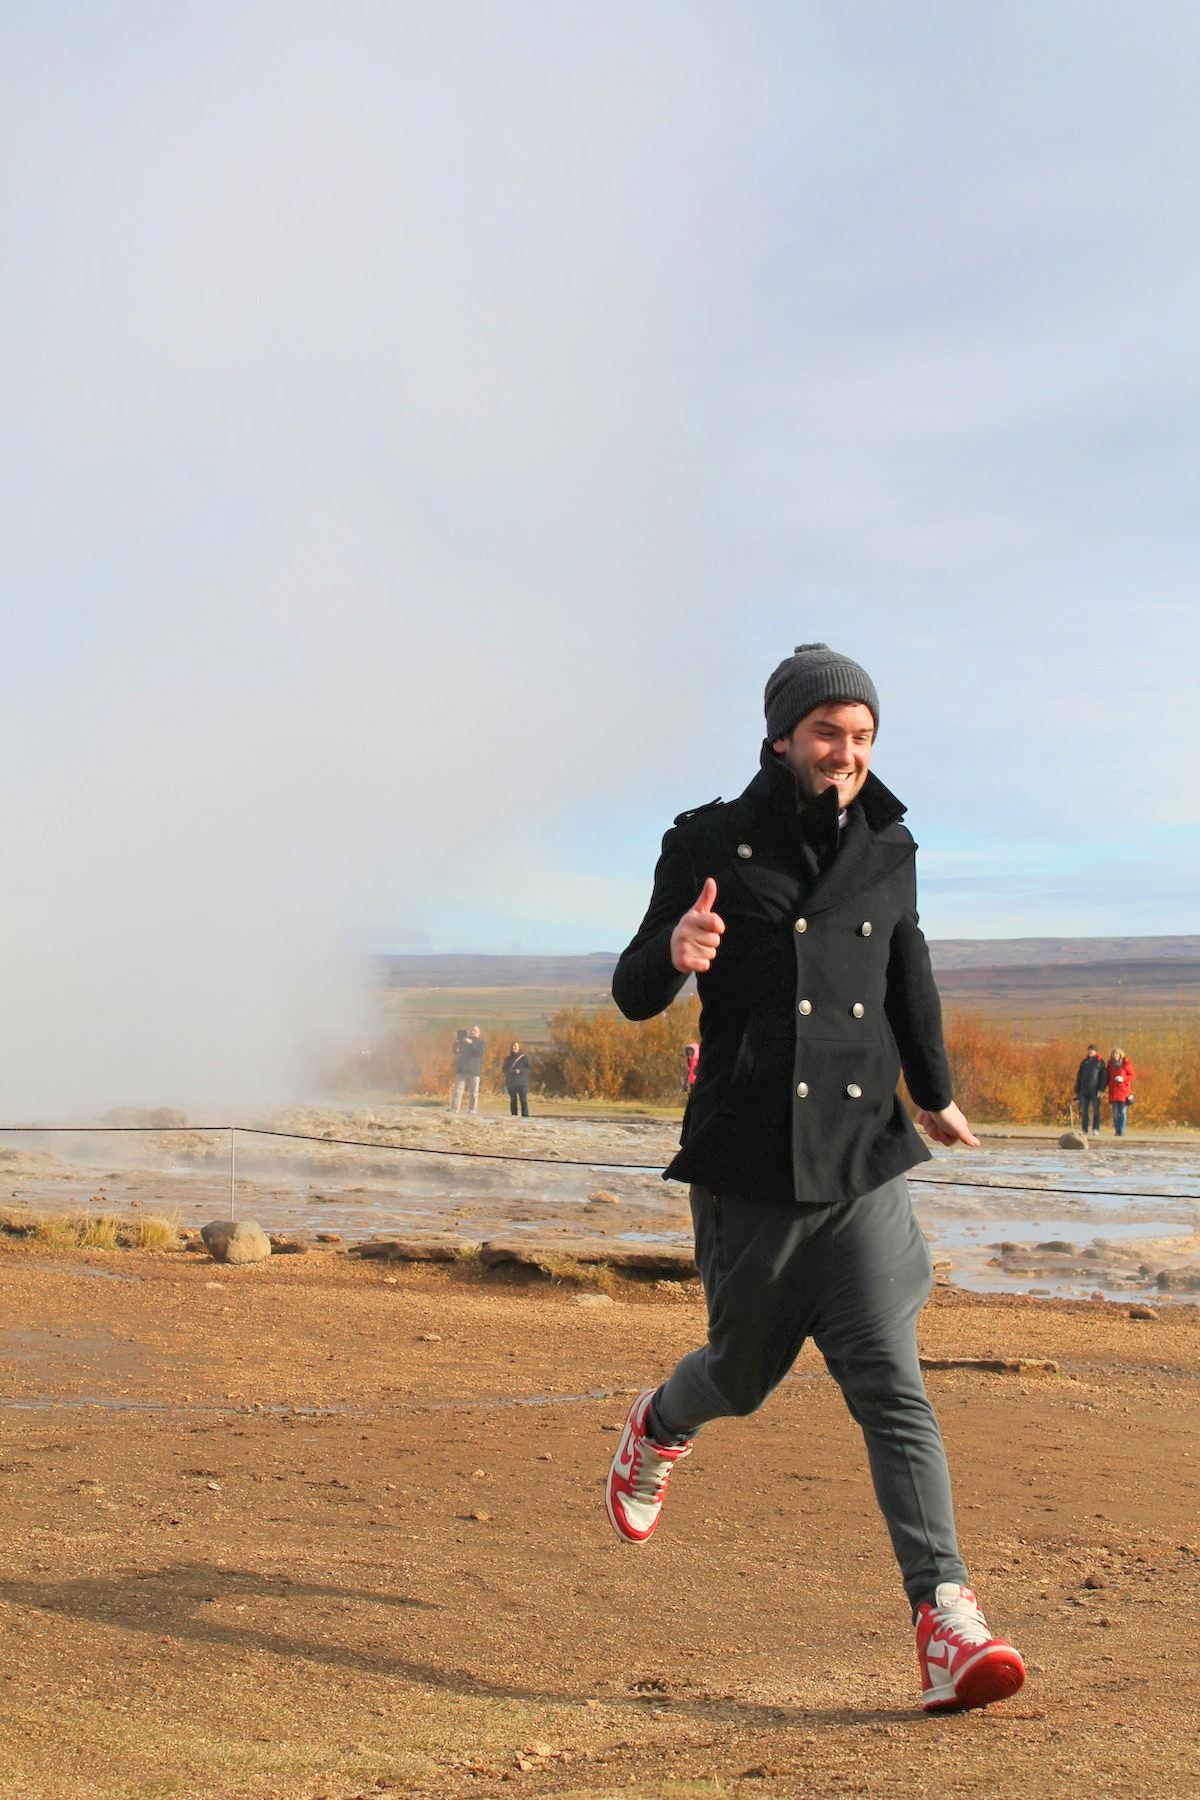 Lloyd Running Away From Geyser in Geysir, Iceland